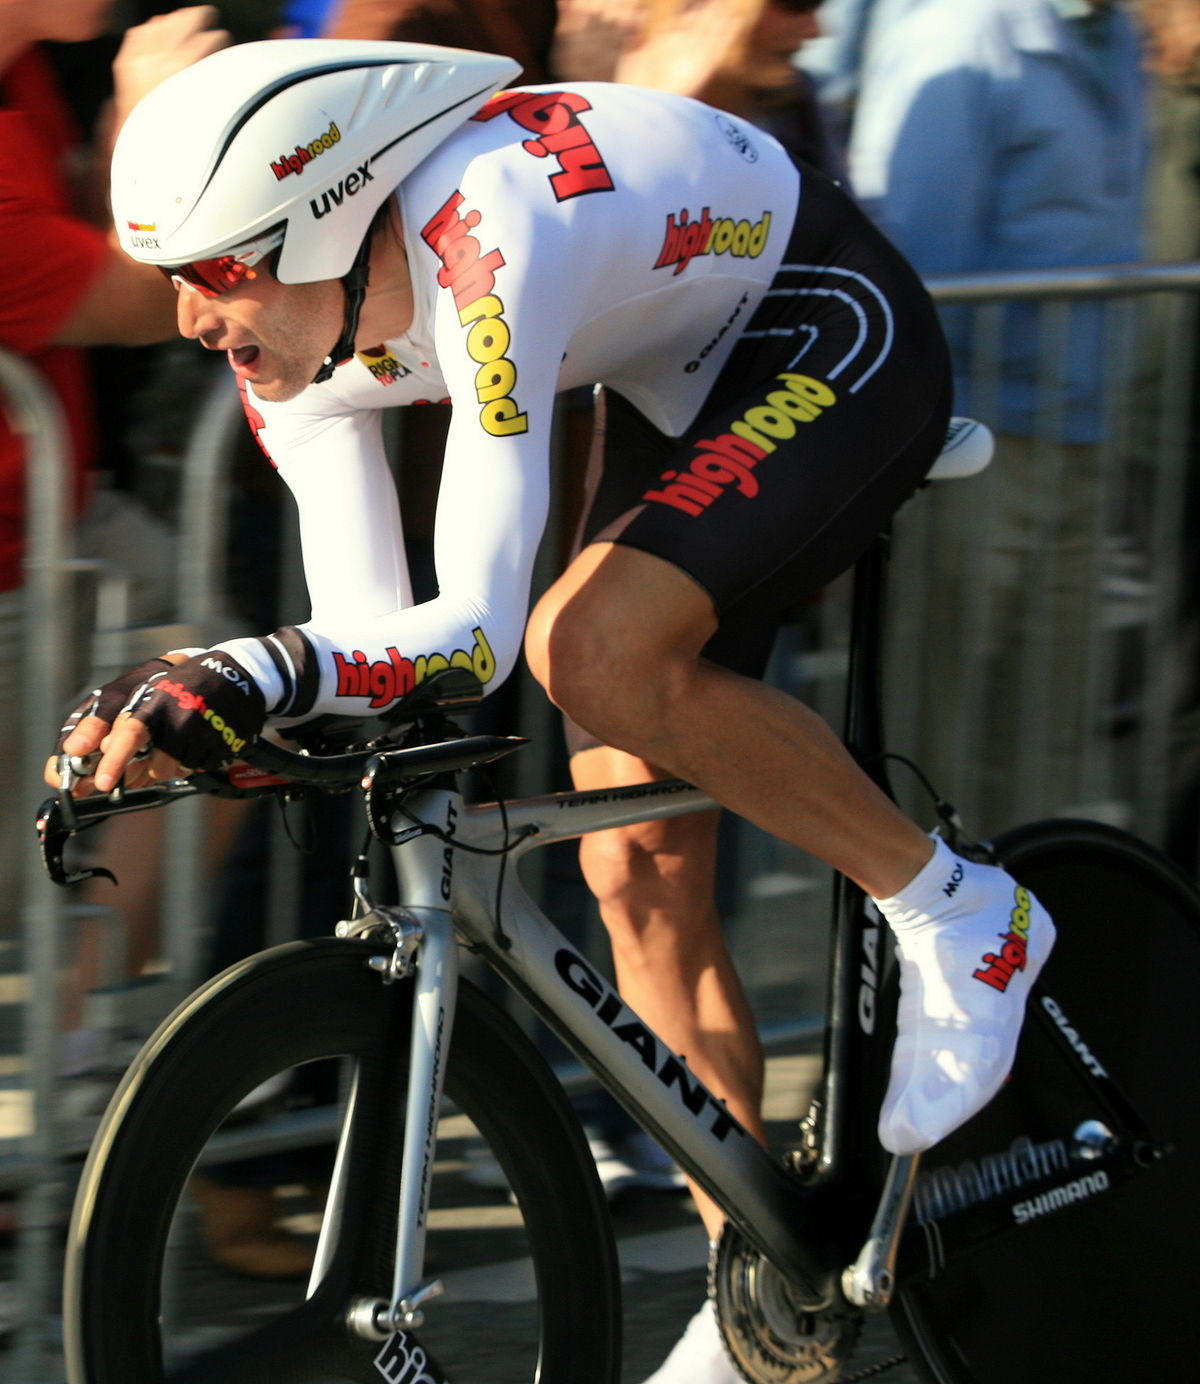 George Hincapie Wikipedia